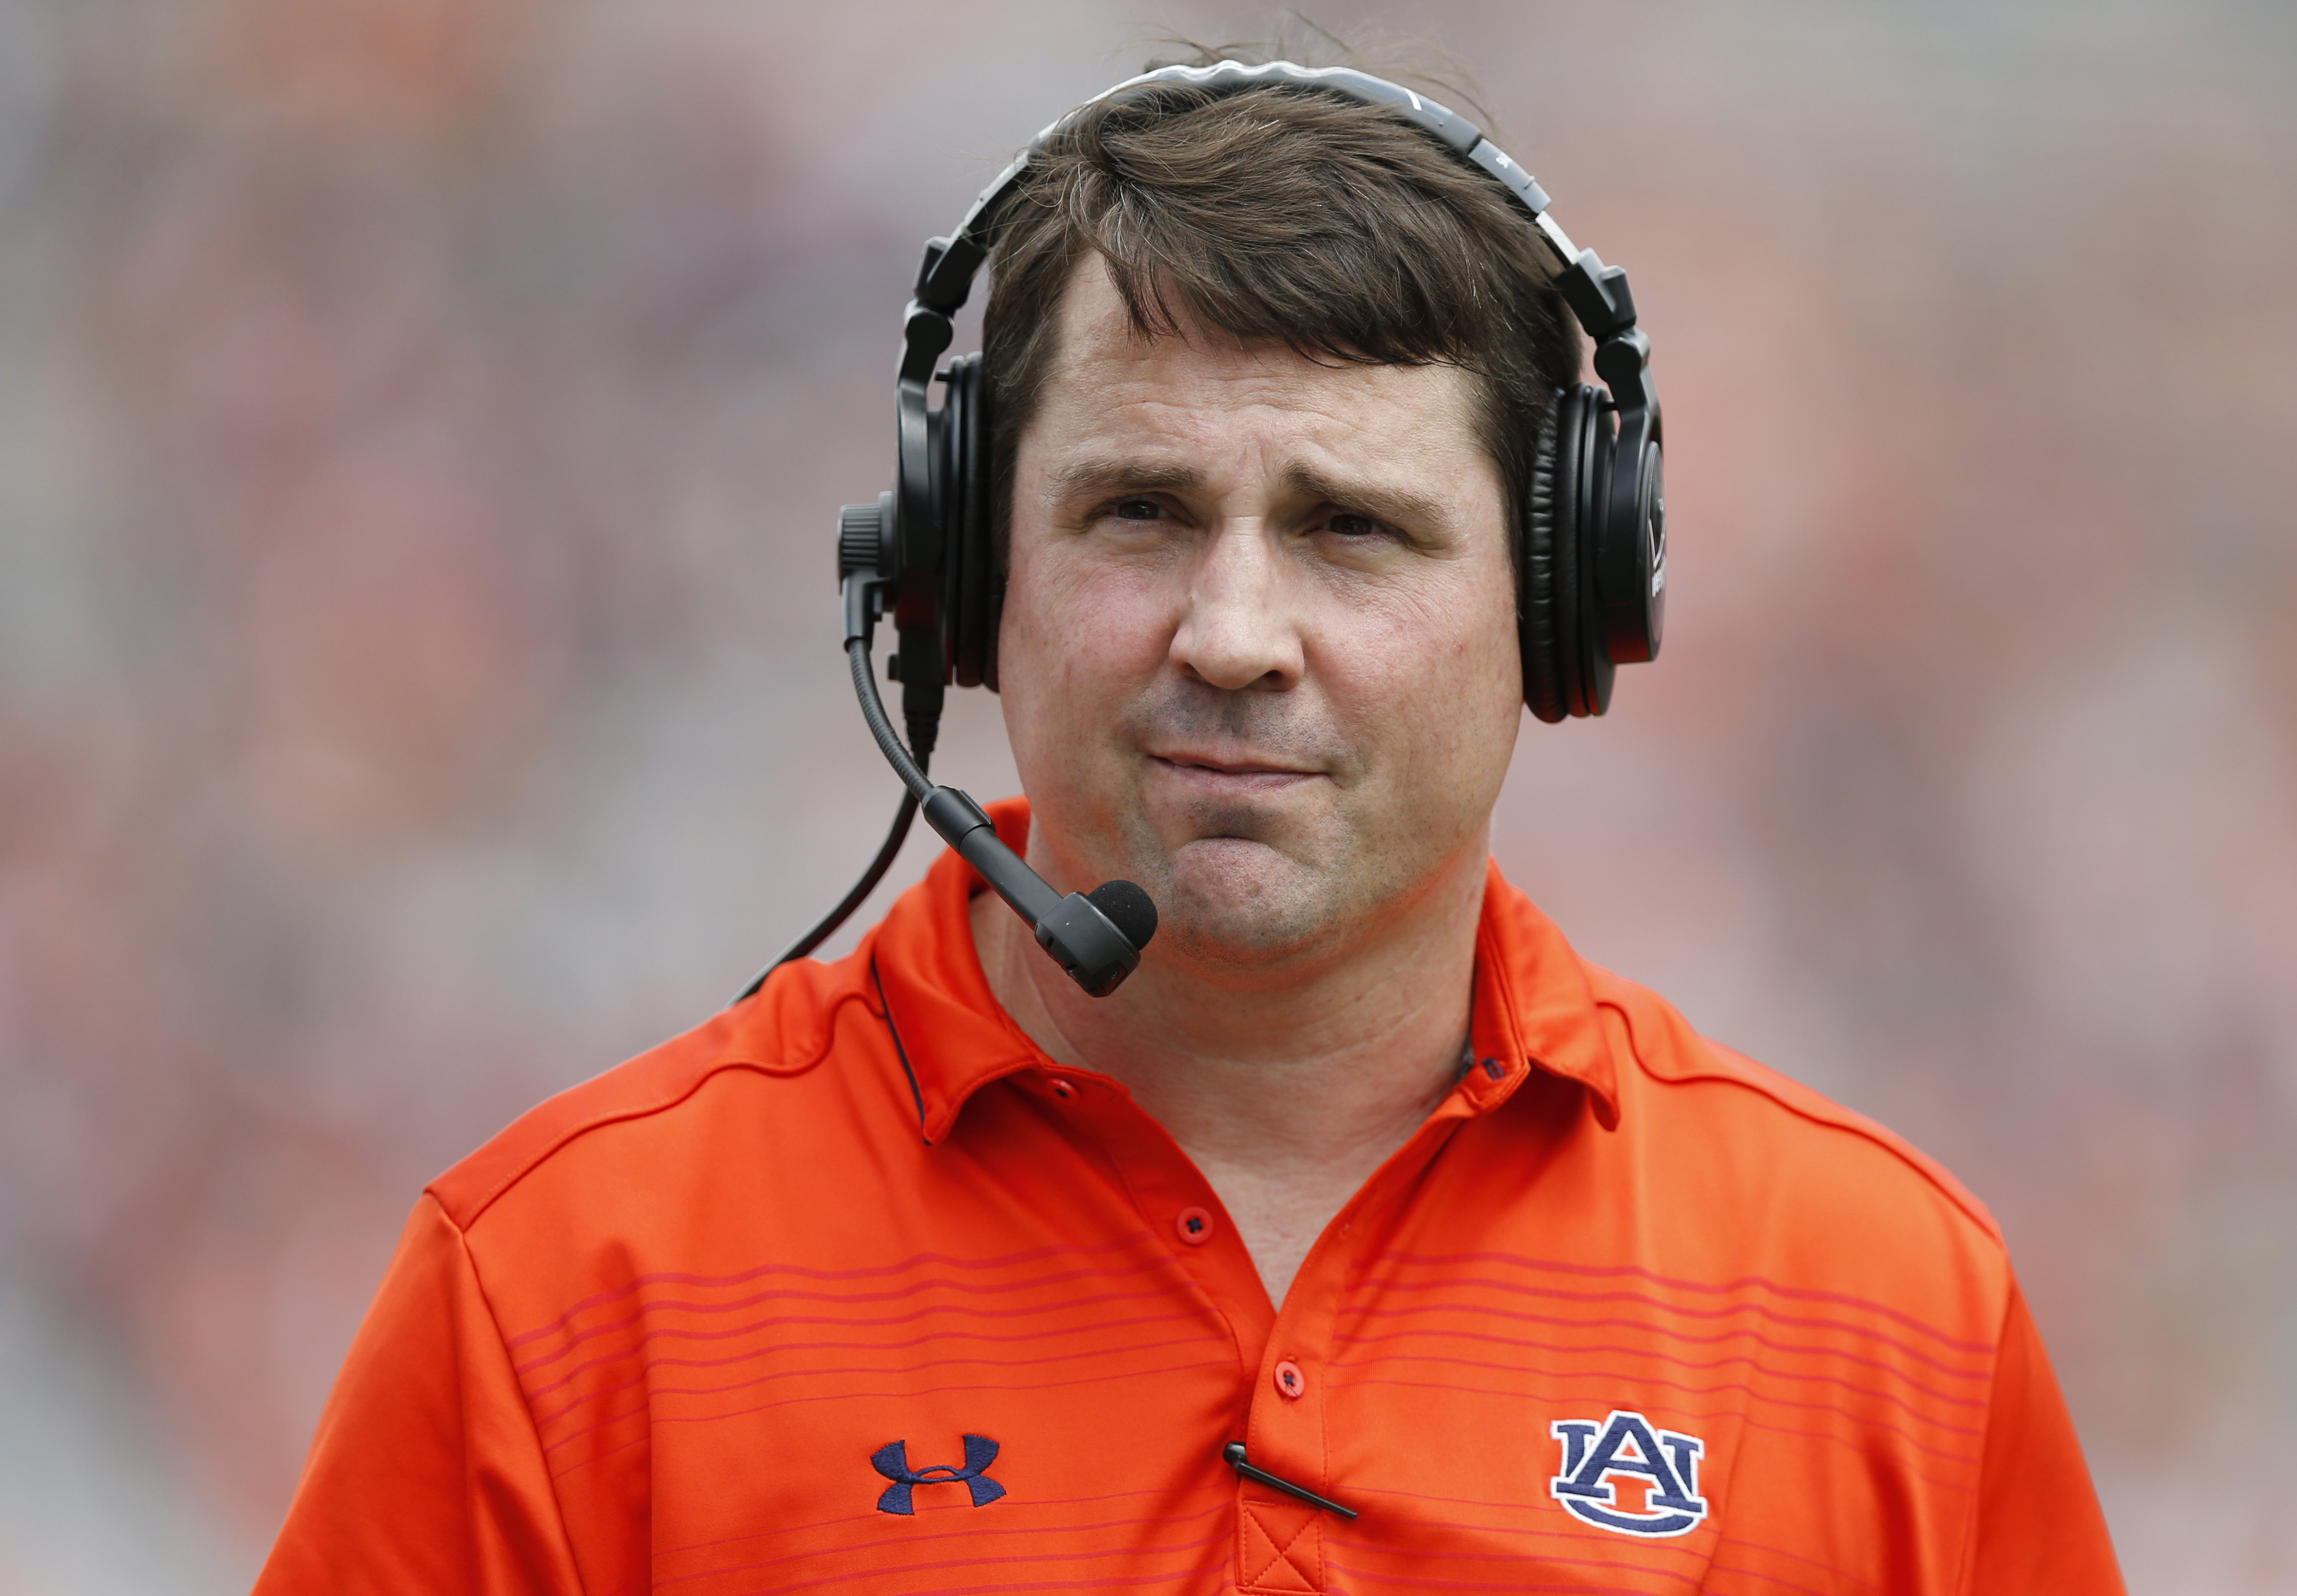 Auburn defensive coordinator Will Muschamp walks around the football field in the first quarter during their spring NCAA college football game, Saturday, April 18, 2015, in Auburn, Ala. (AP Photo/Brynn Anderson)